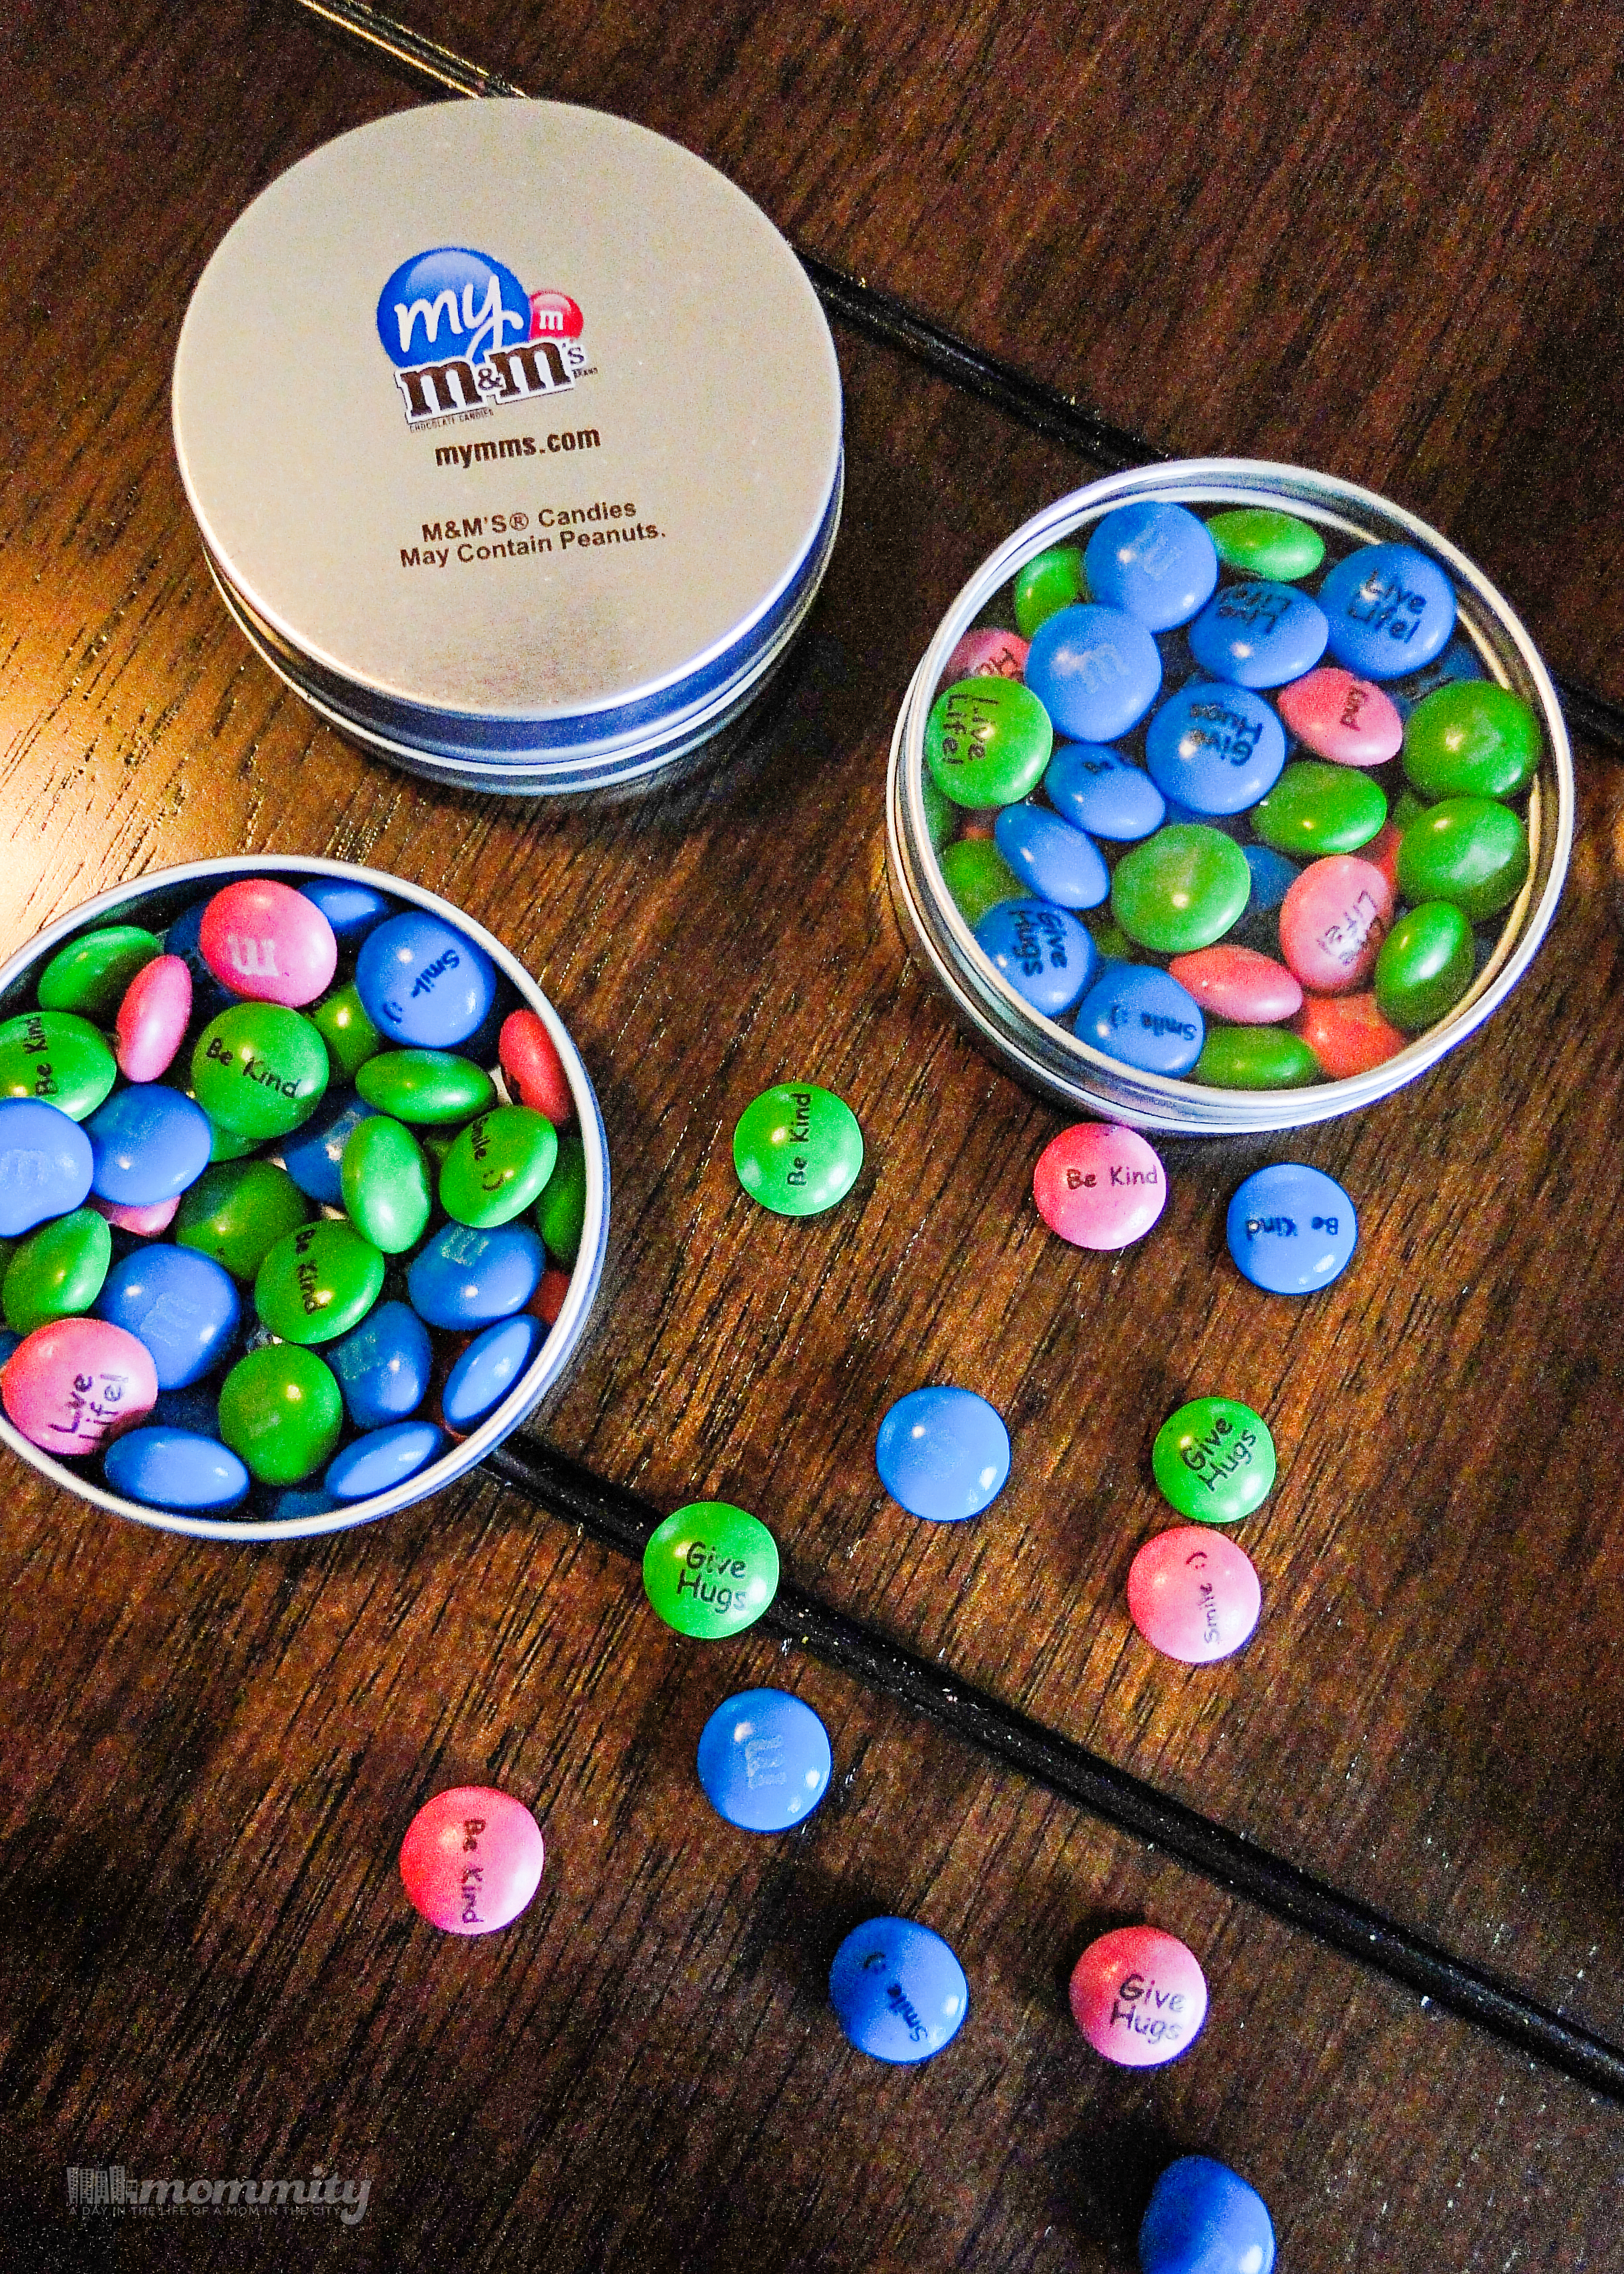 Spreading Some Cheer with My M&M's - Free ROAK Printable!